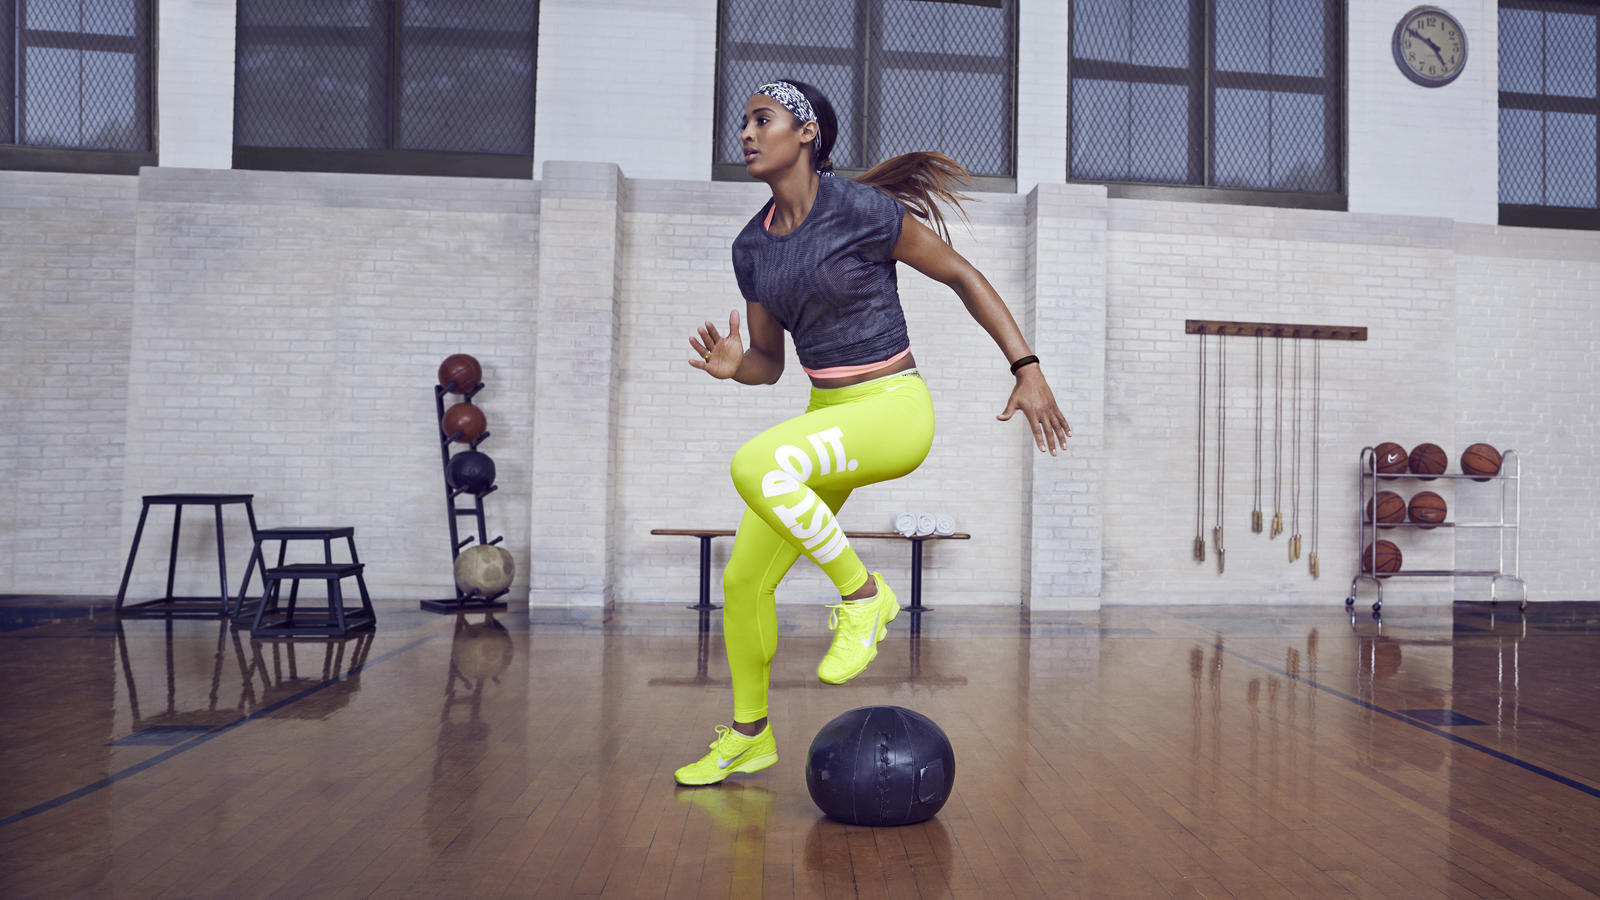 Images Of Fall Season Wallpaper Nike News Fitting In Five With Skylar Diggins N Tc Zoom